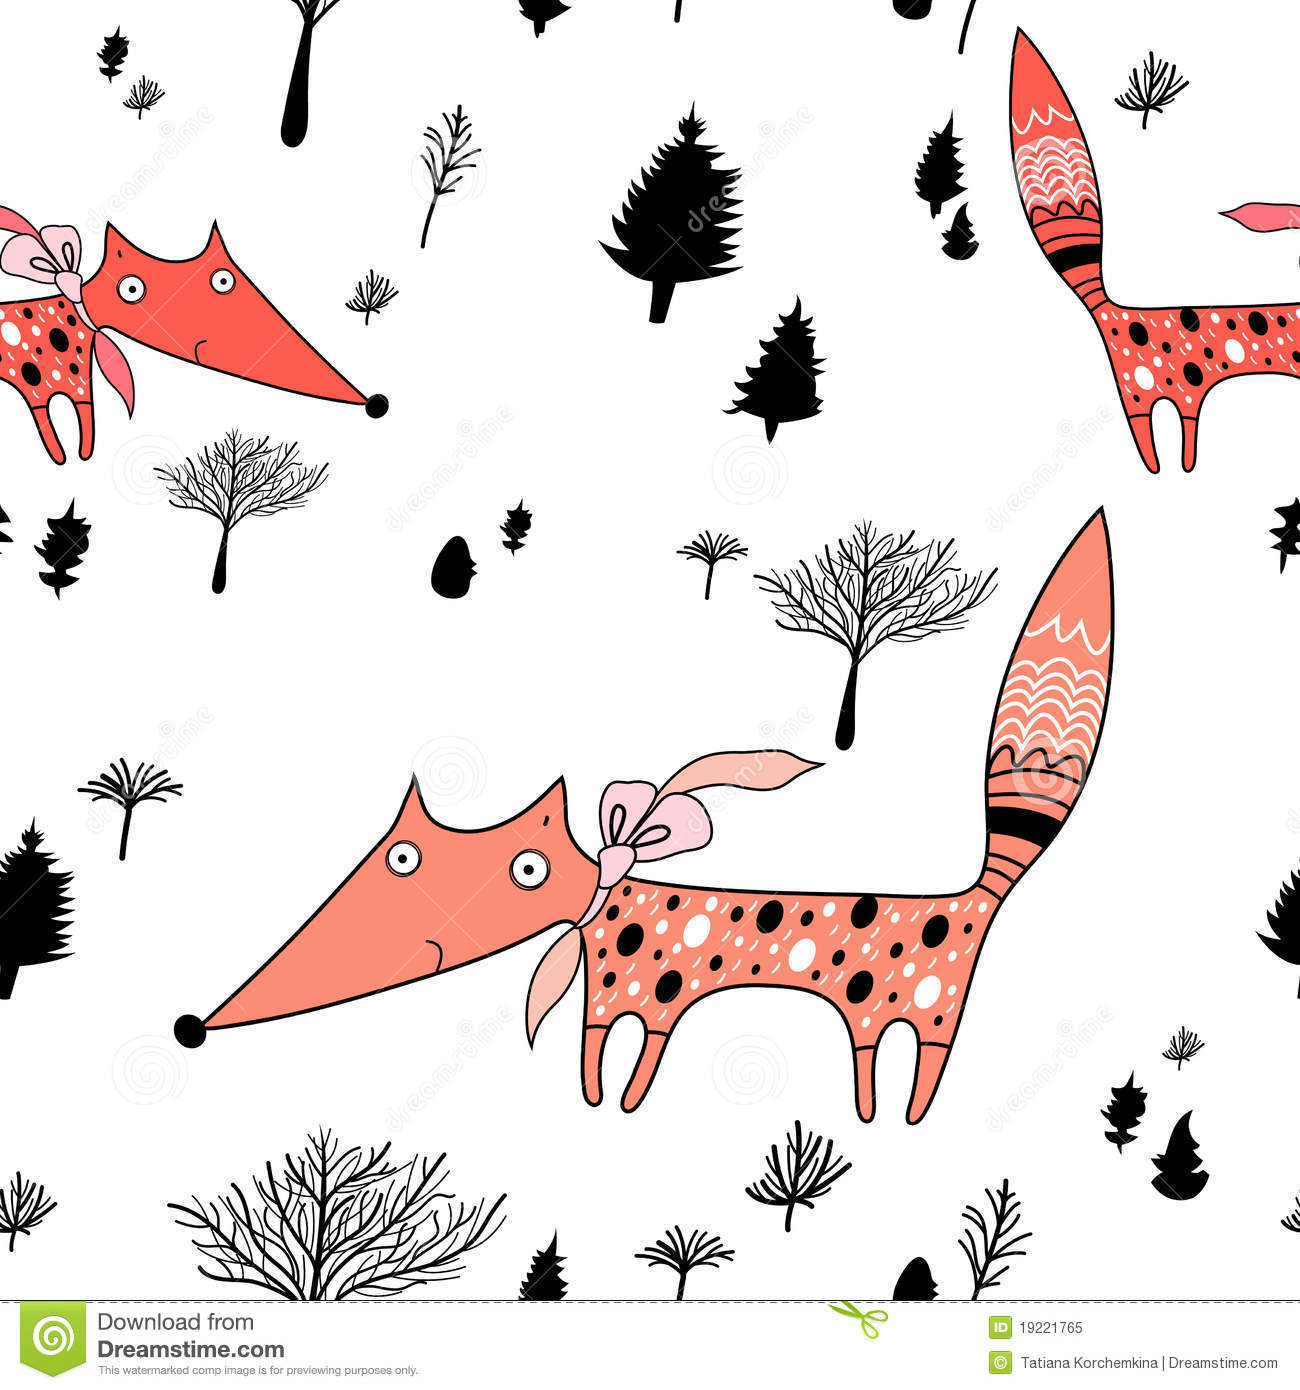 Texture of foxes in the forest